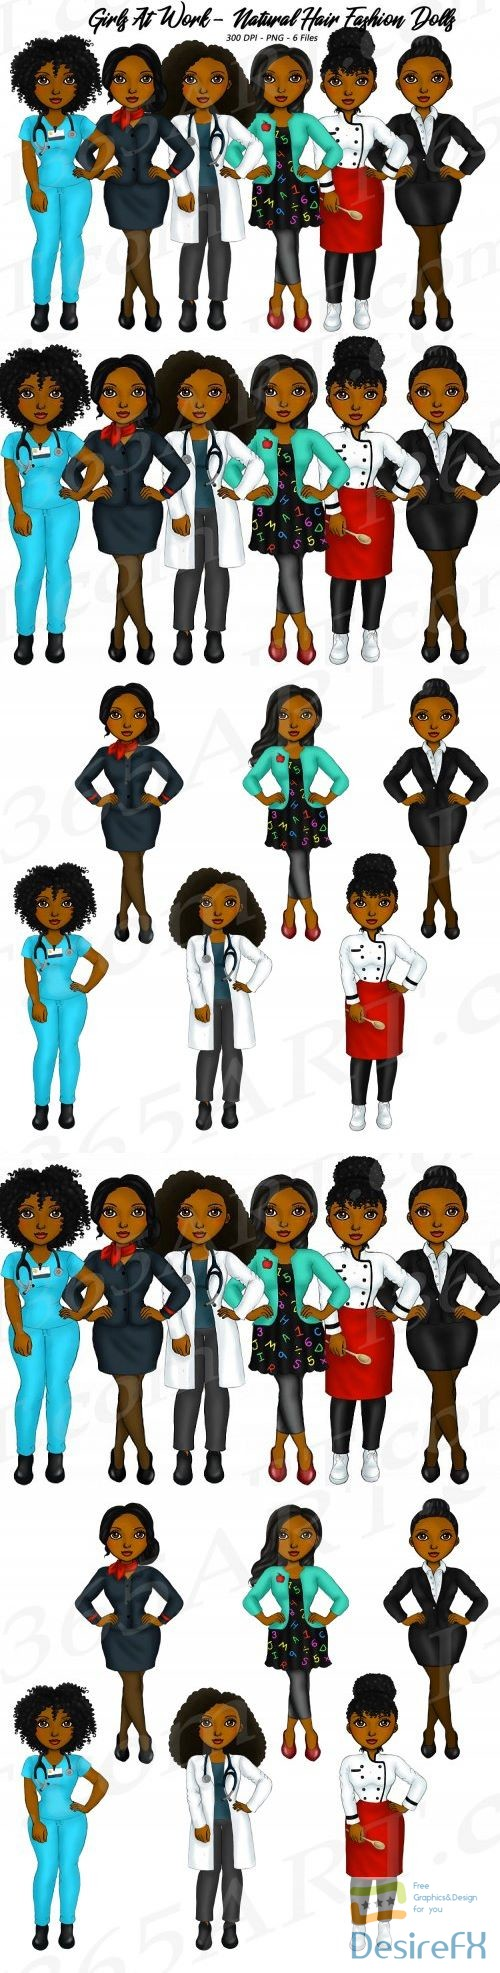 stock-images - Girls At Work Fashion Clipart, Girl Boss, Natural Hair Girls - 305903